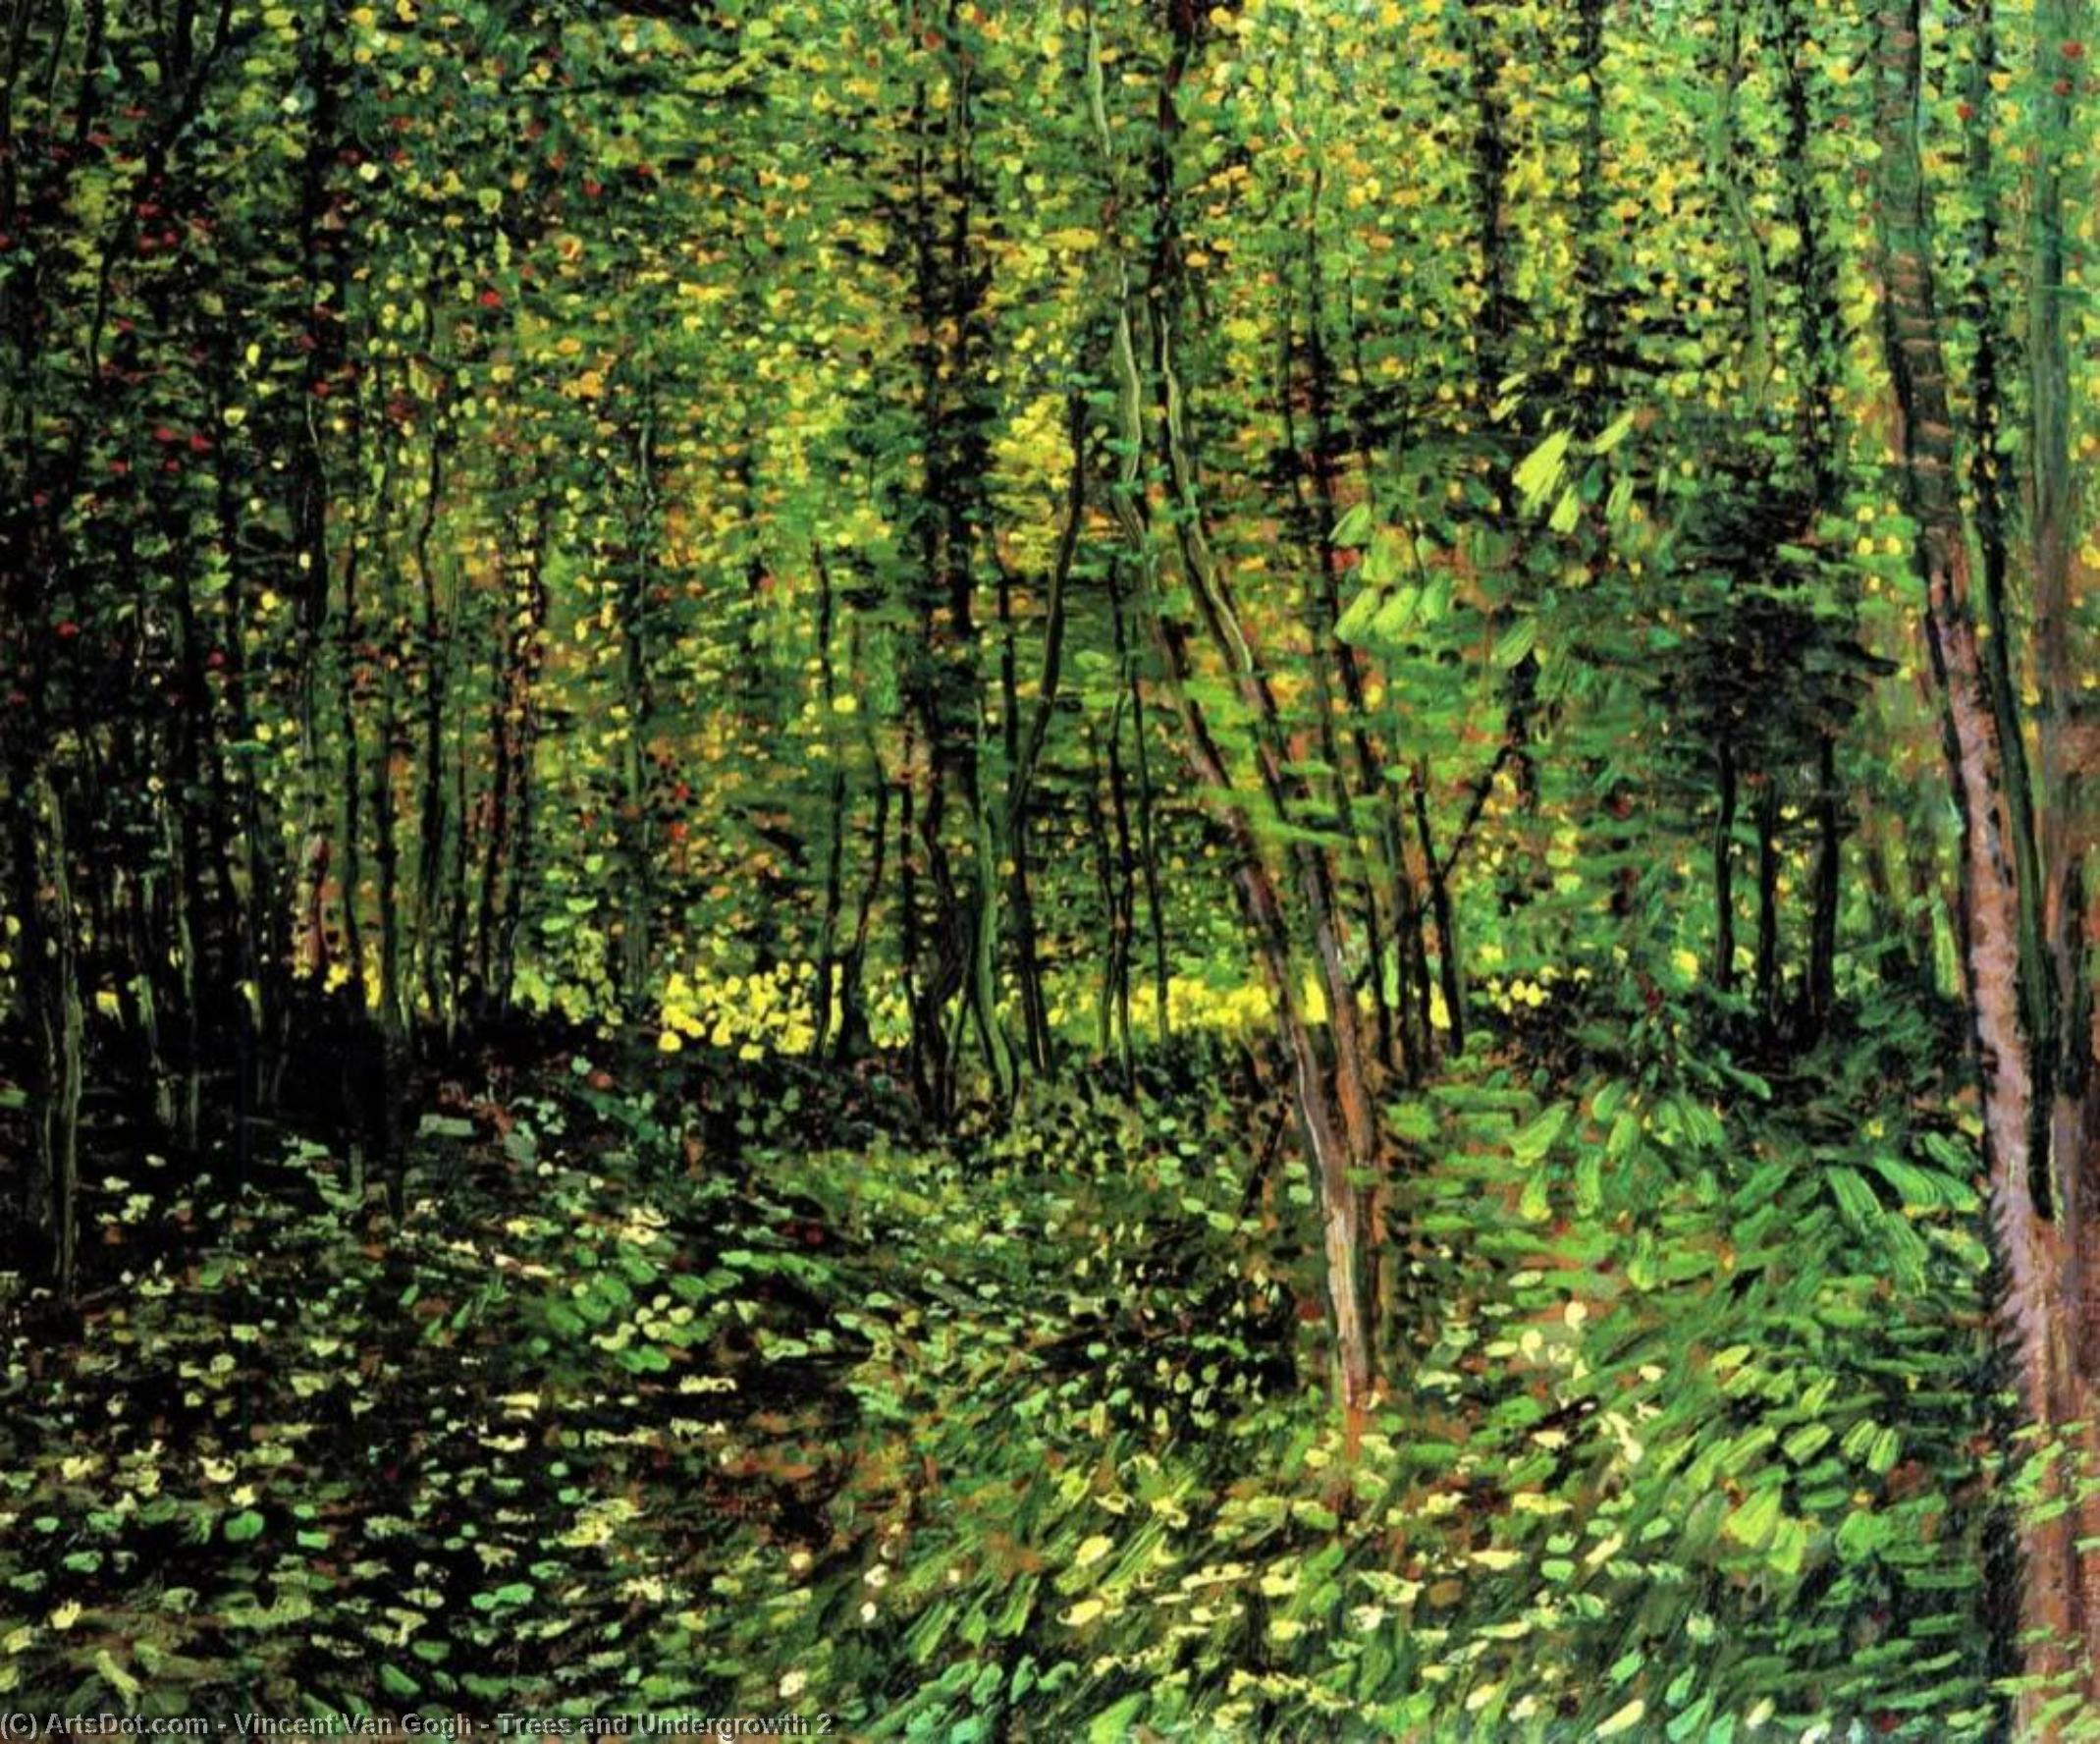 Wikioo.org - The Encyclopedia of Fine Arts - Painting, Artwork by Vincent Van Gogh - Trees and Undergrowth 2